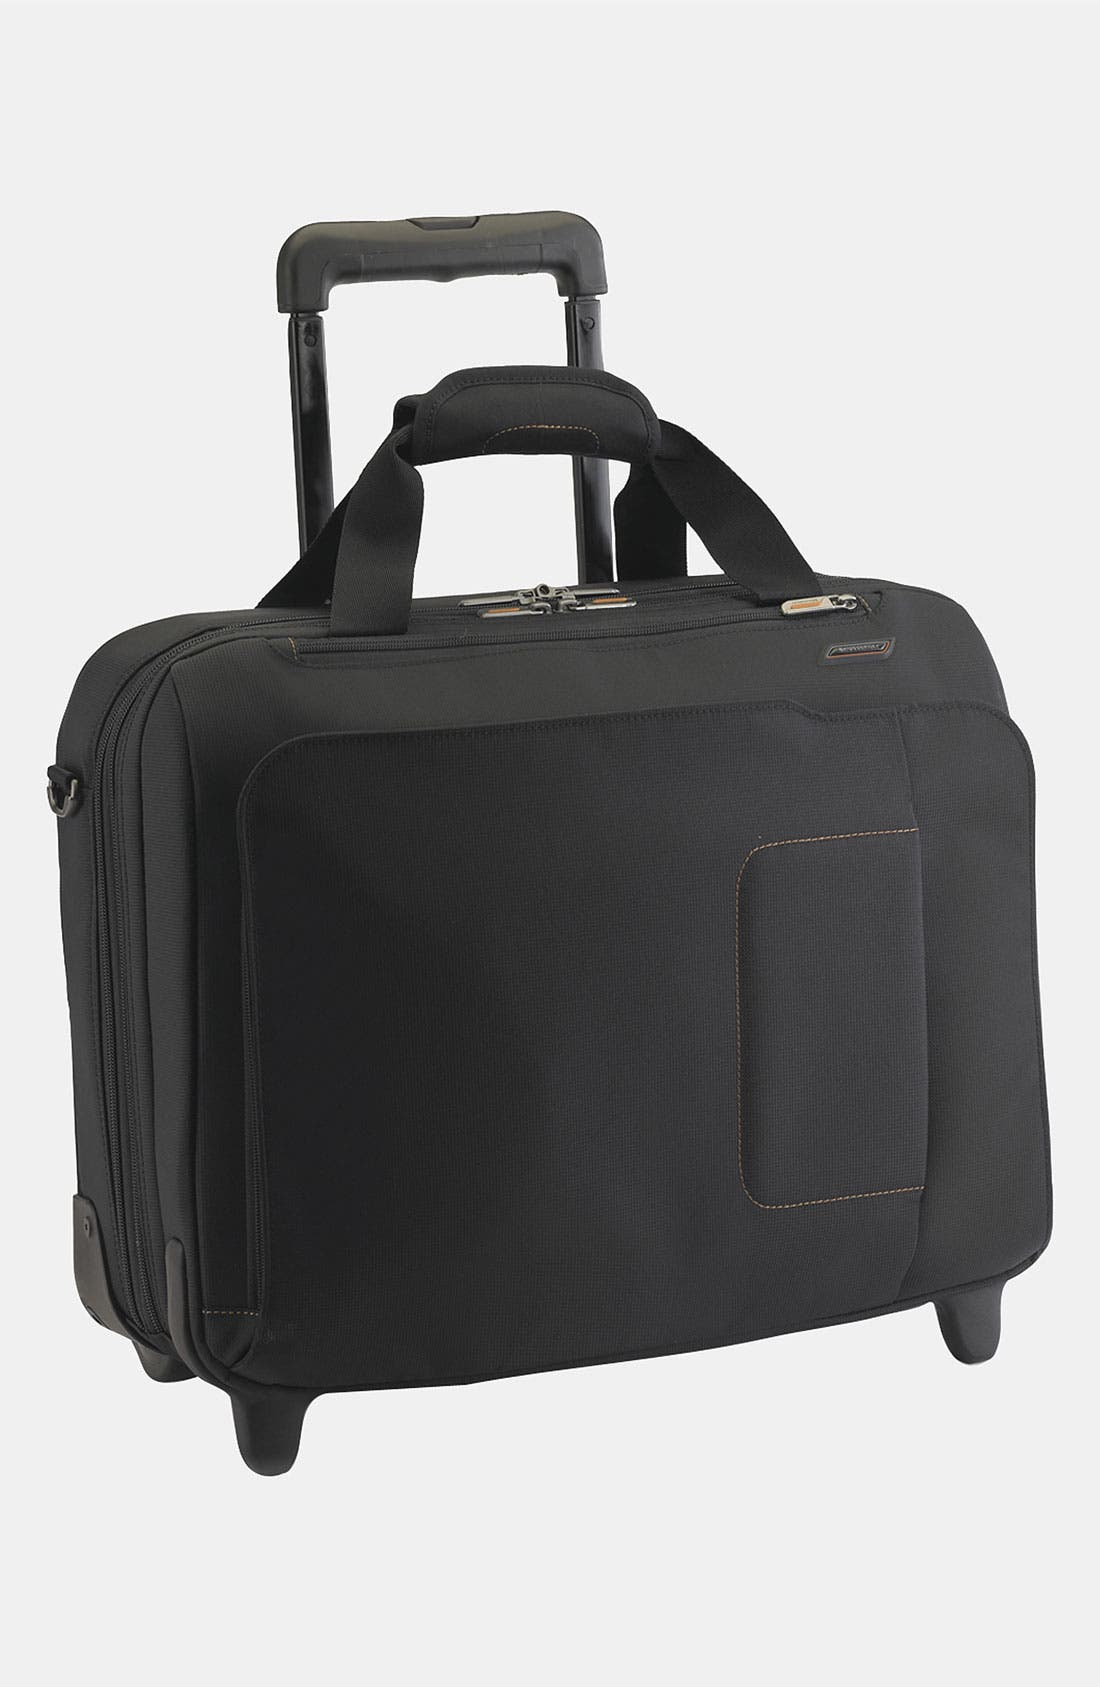 Main Image - Briggs & Riley 'Verb - Roam' Large Rolling Case